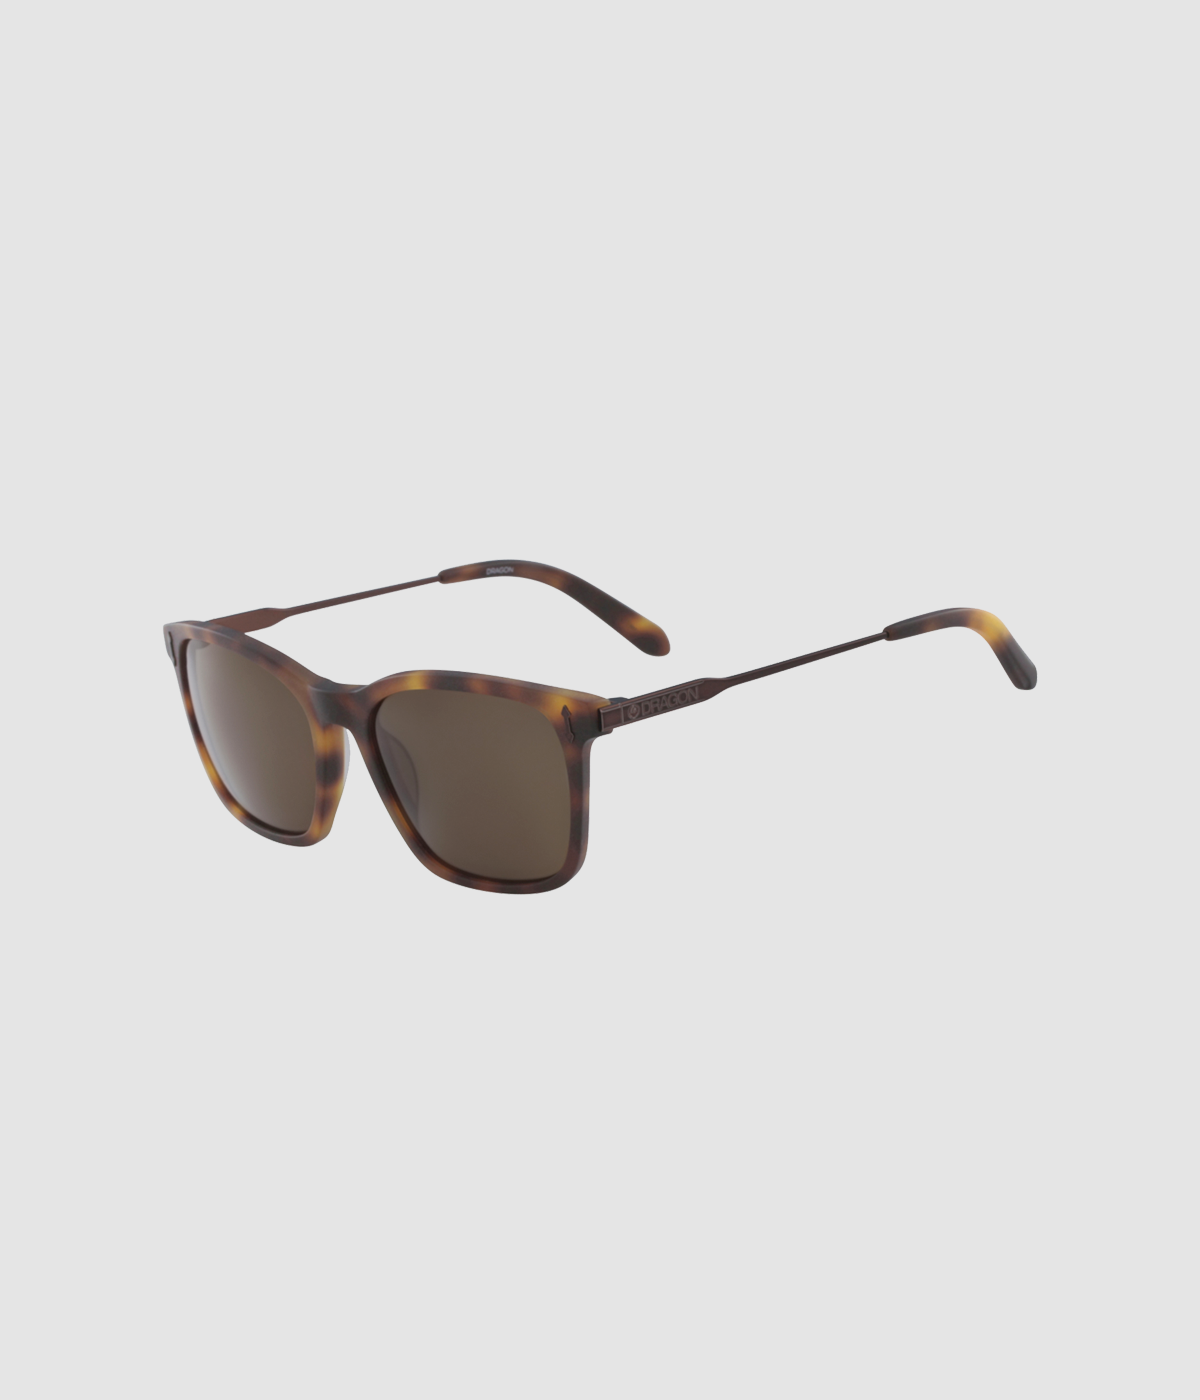 Sunglasses - Wavelength Surfers' Christmas Gift Guide: Dragon Jake - Matte Tortoise with Brown Lens